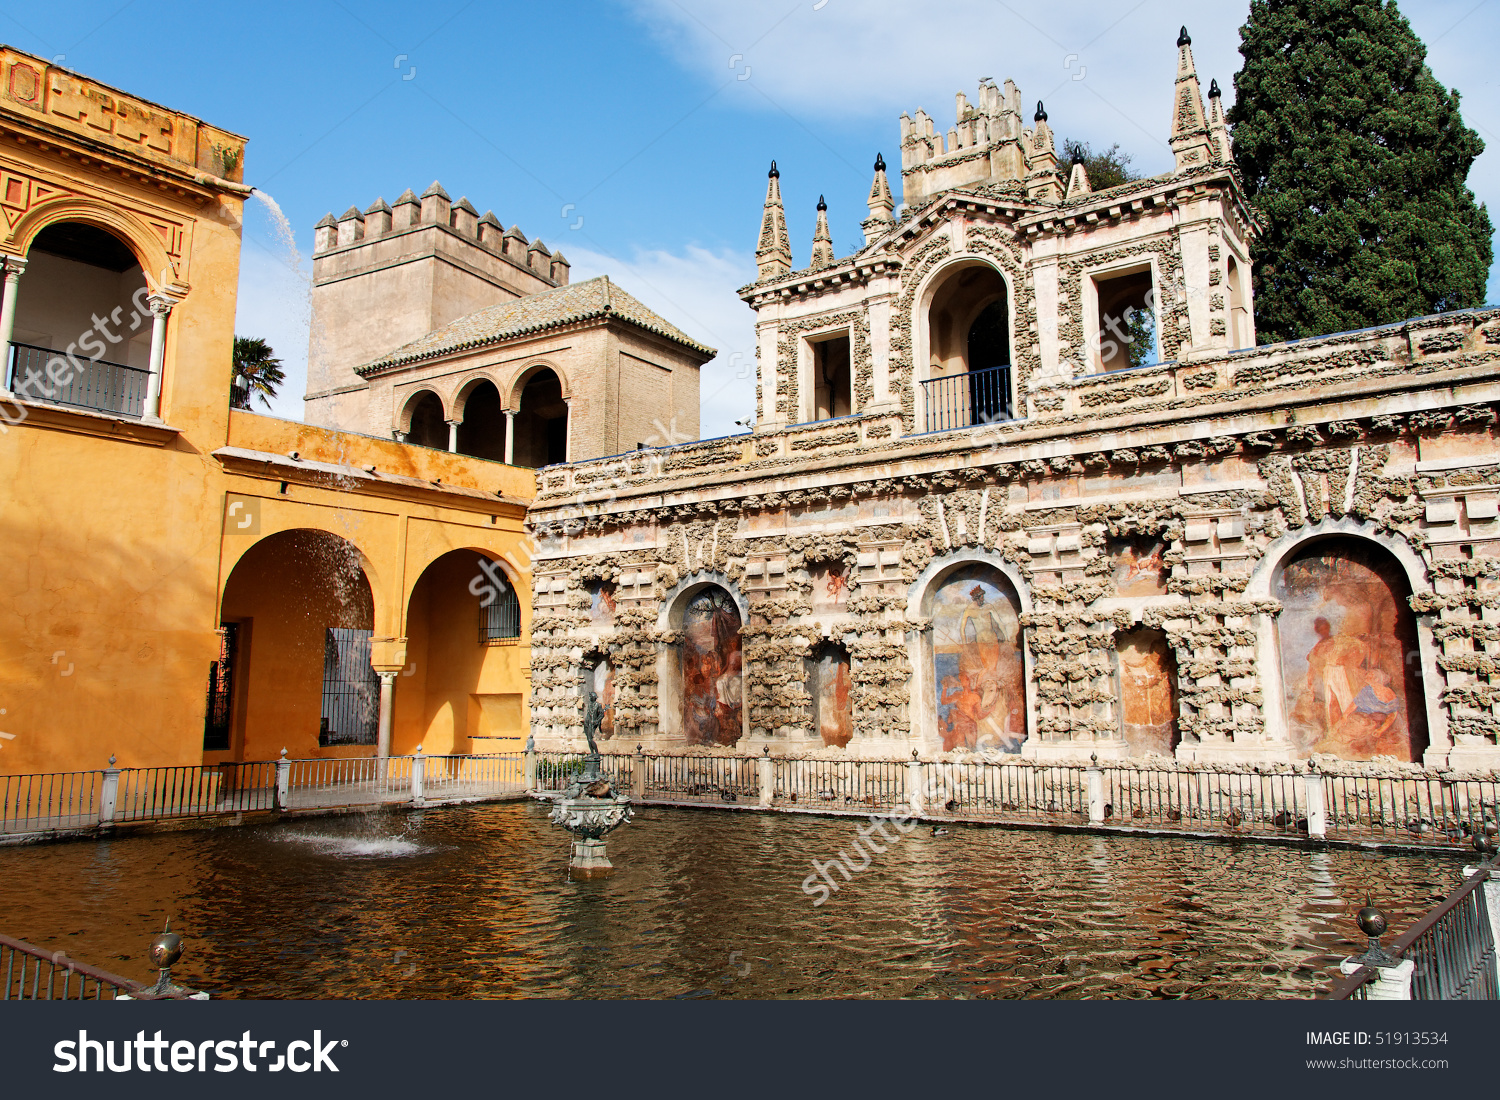 Seville, Real Alcazar Gardens' Main Pool Stock Photo 51913534.